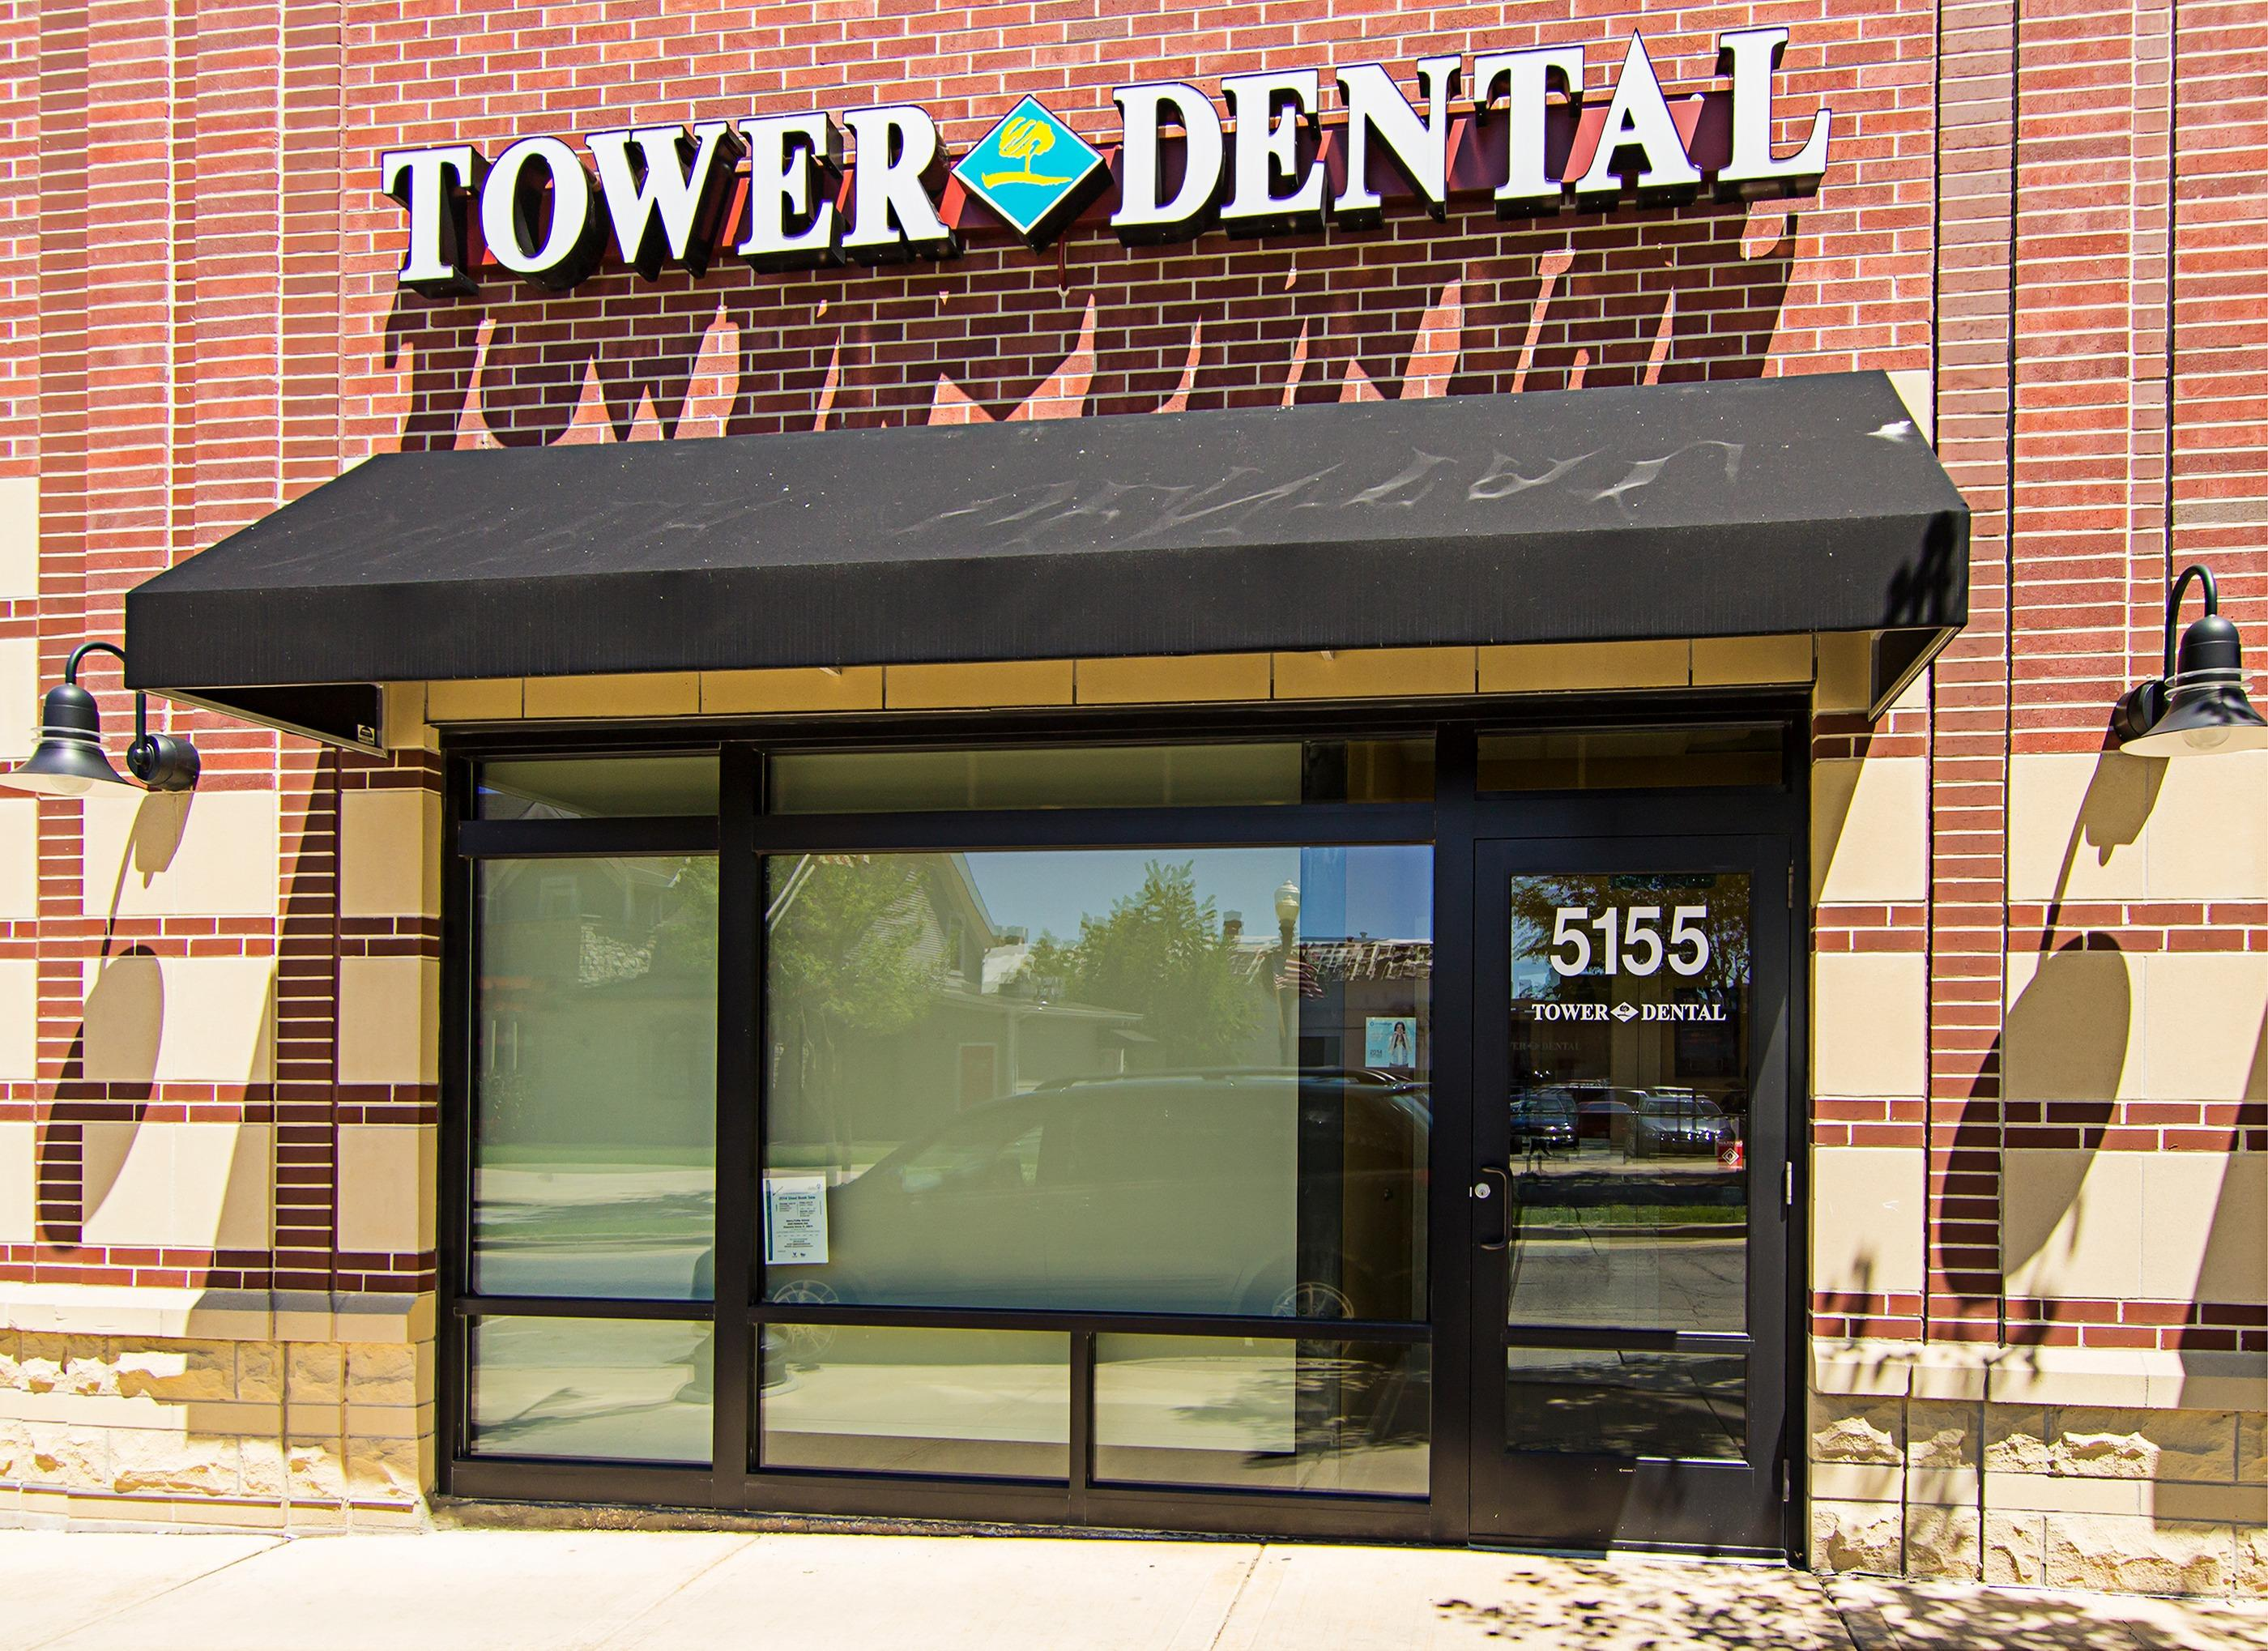 Tower Dental Associates image 1